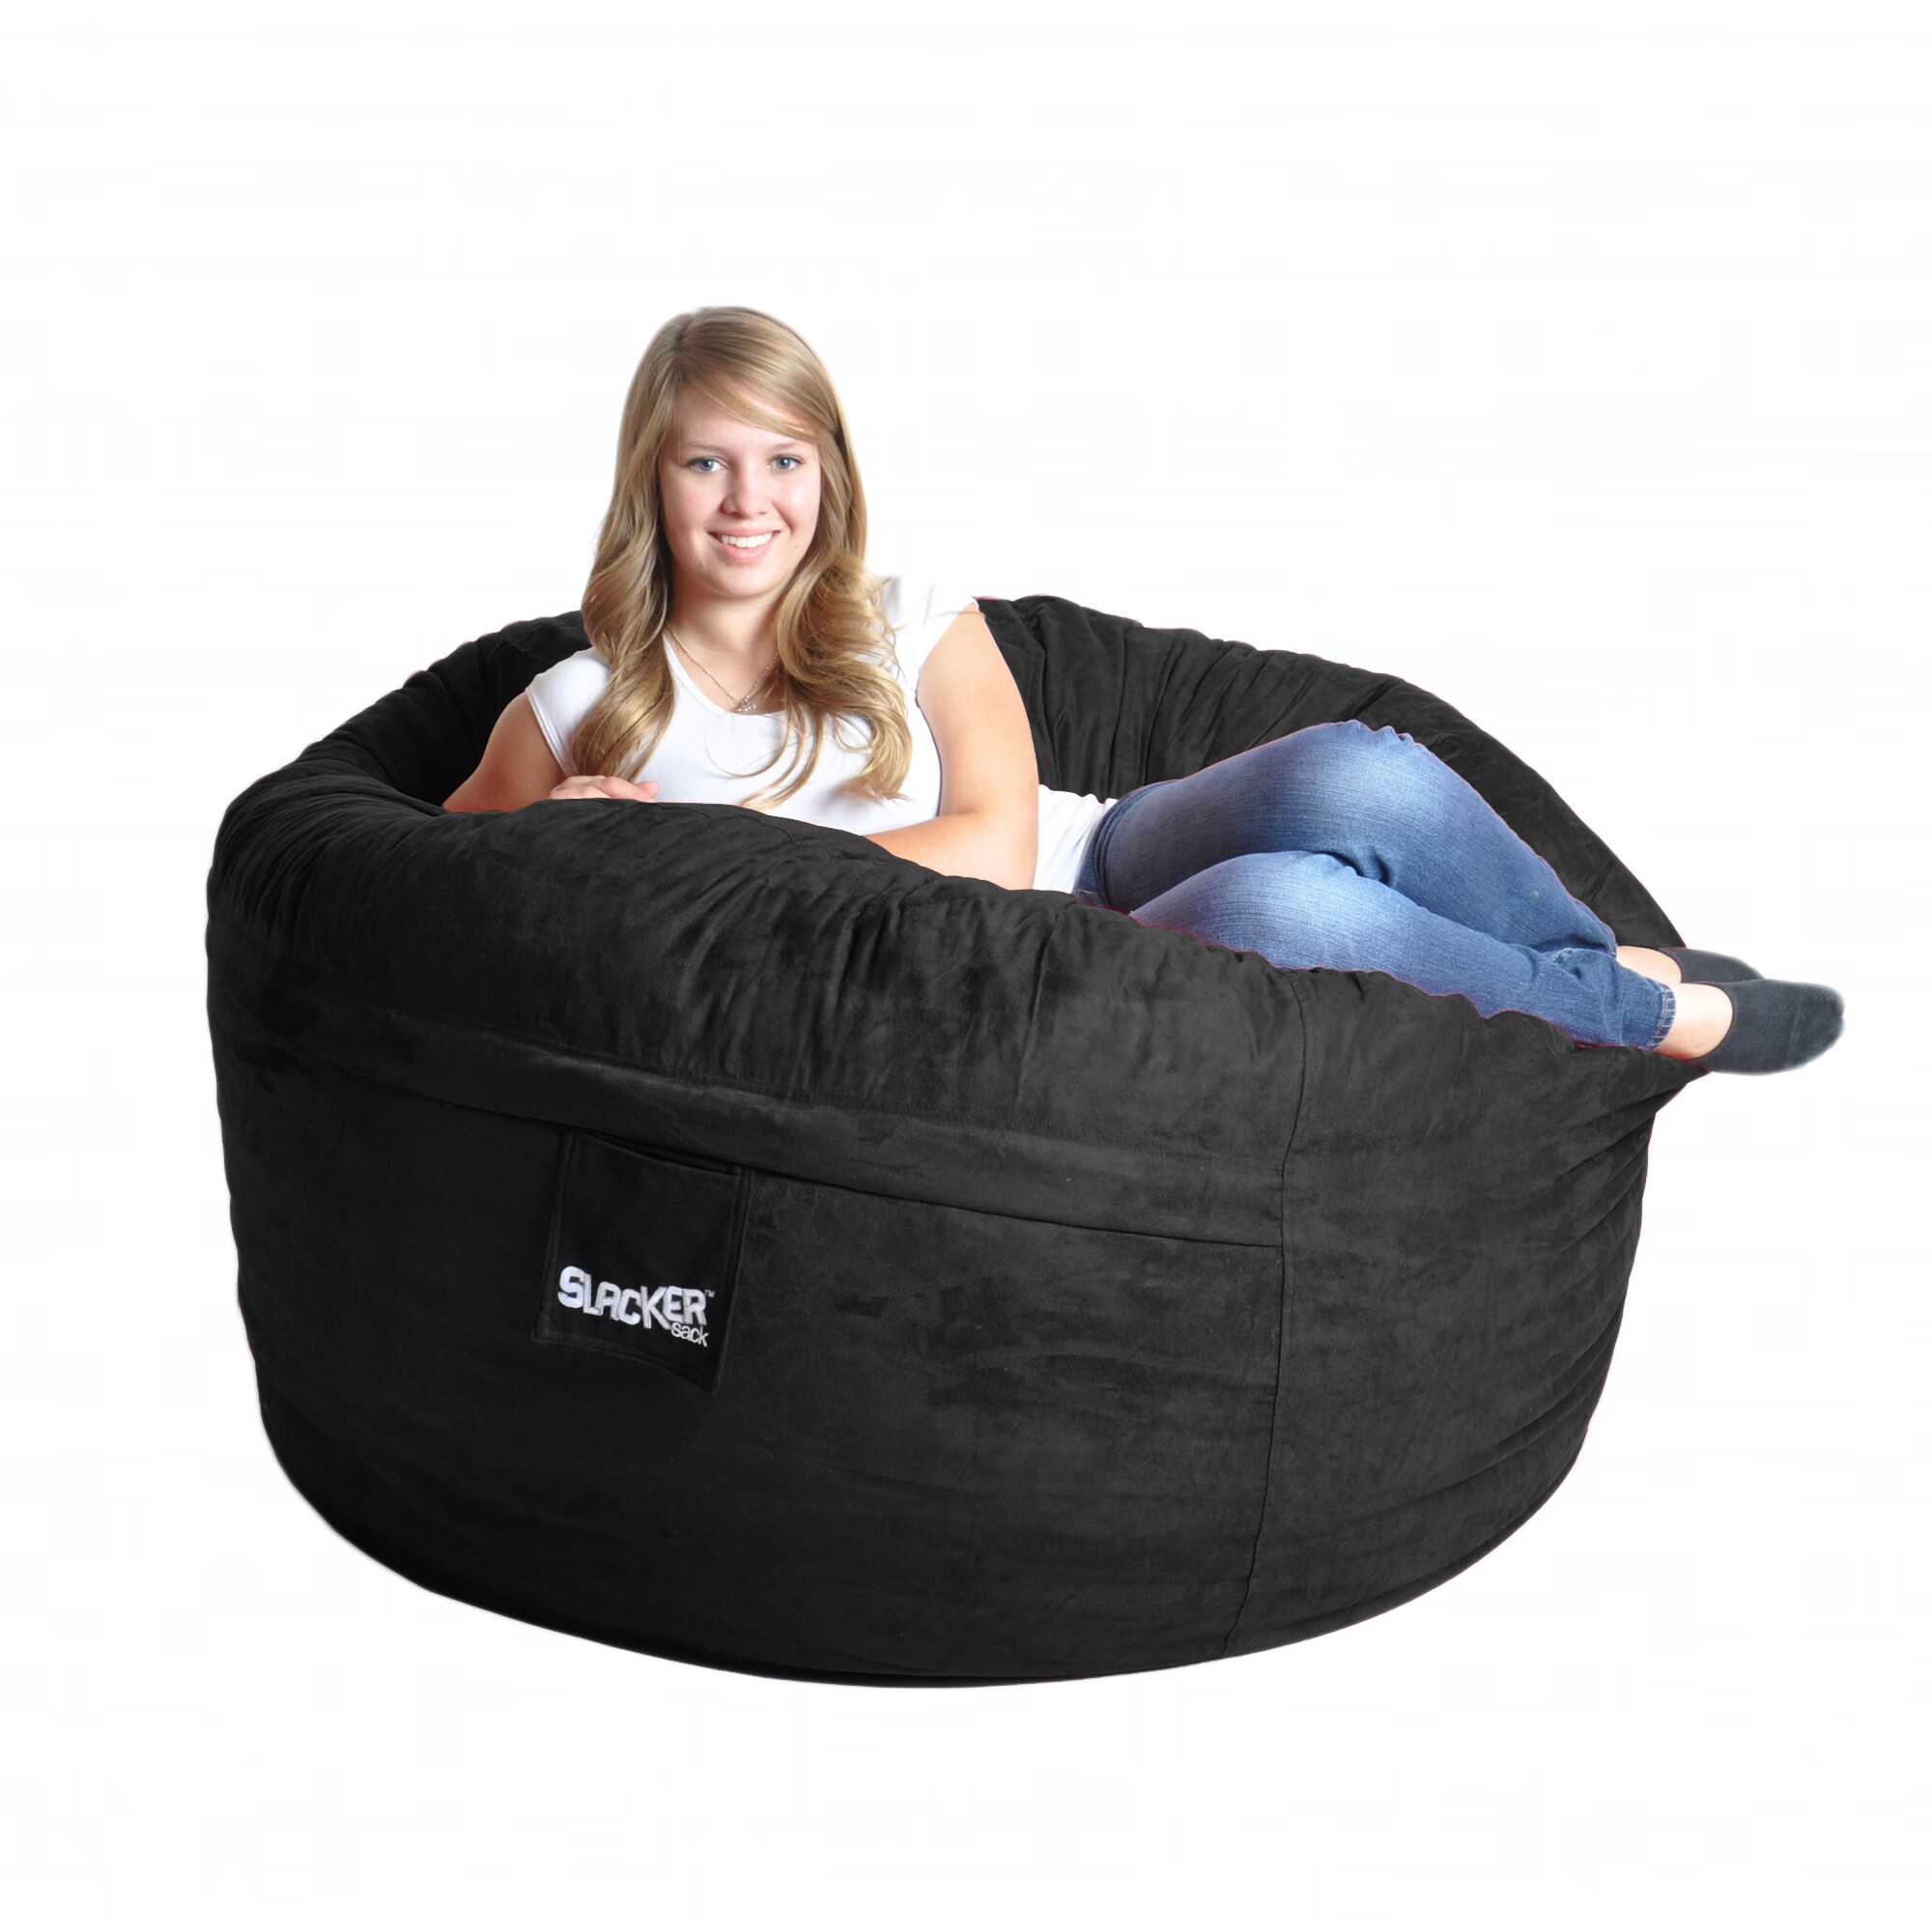 Foam Bean Bag Chair Black Microfiber And Foam Bean Bag Chair 5 39 Round Ebay